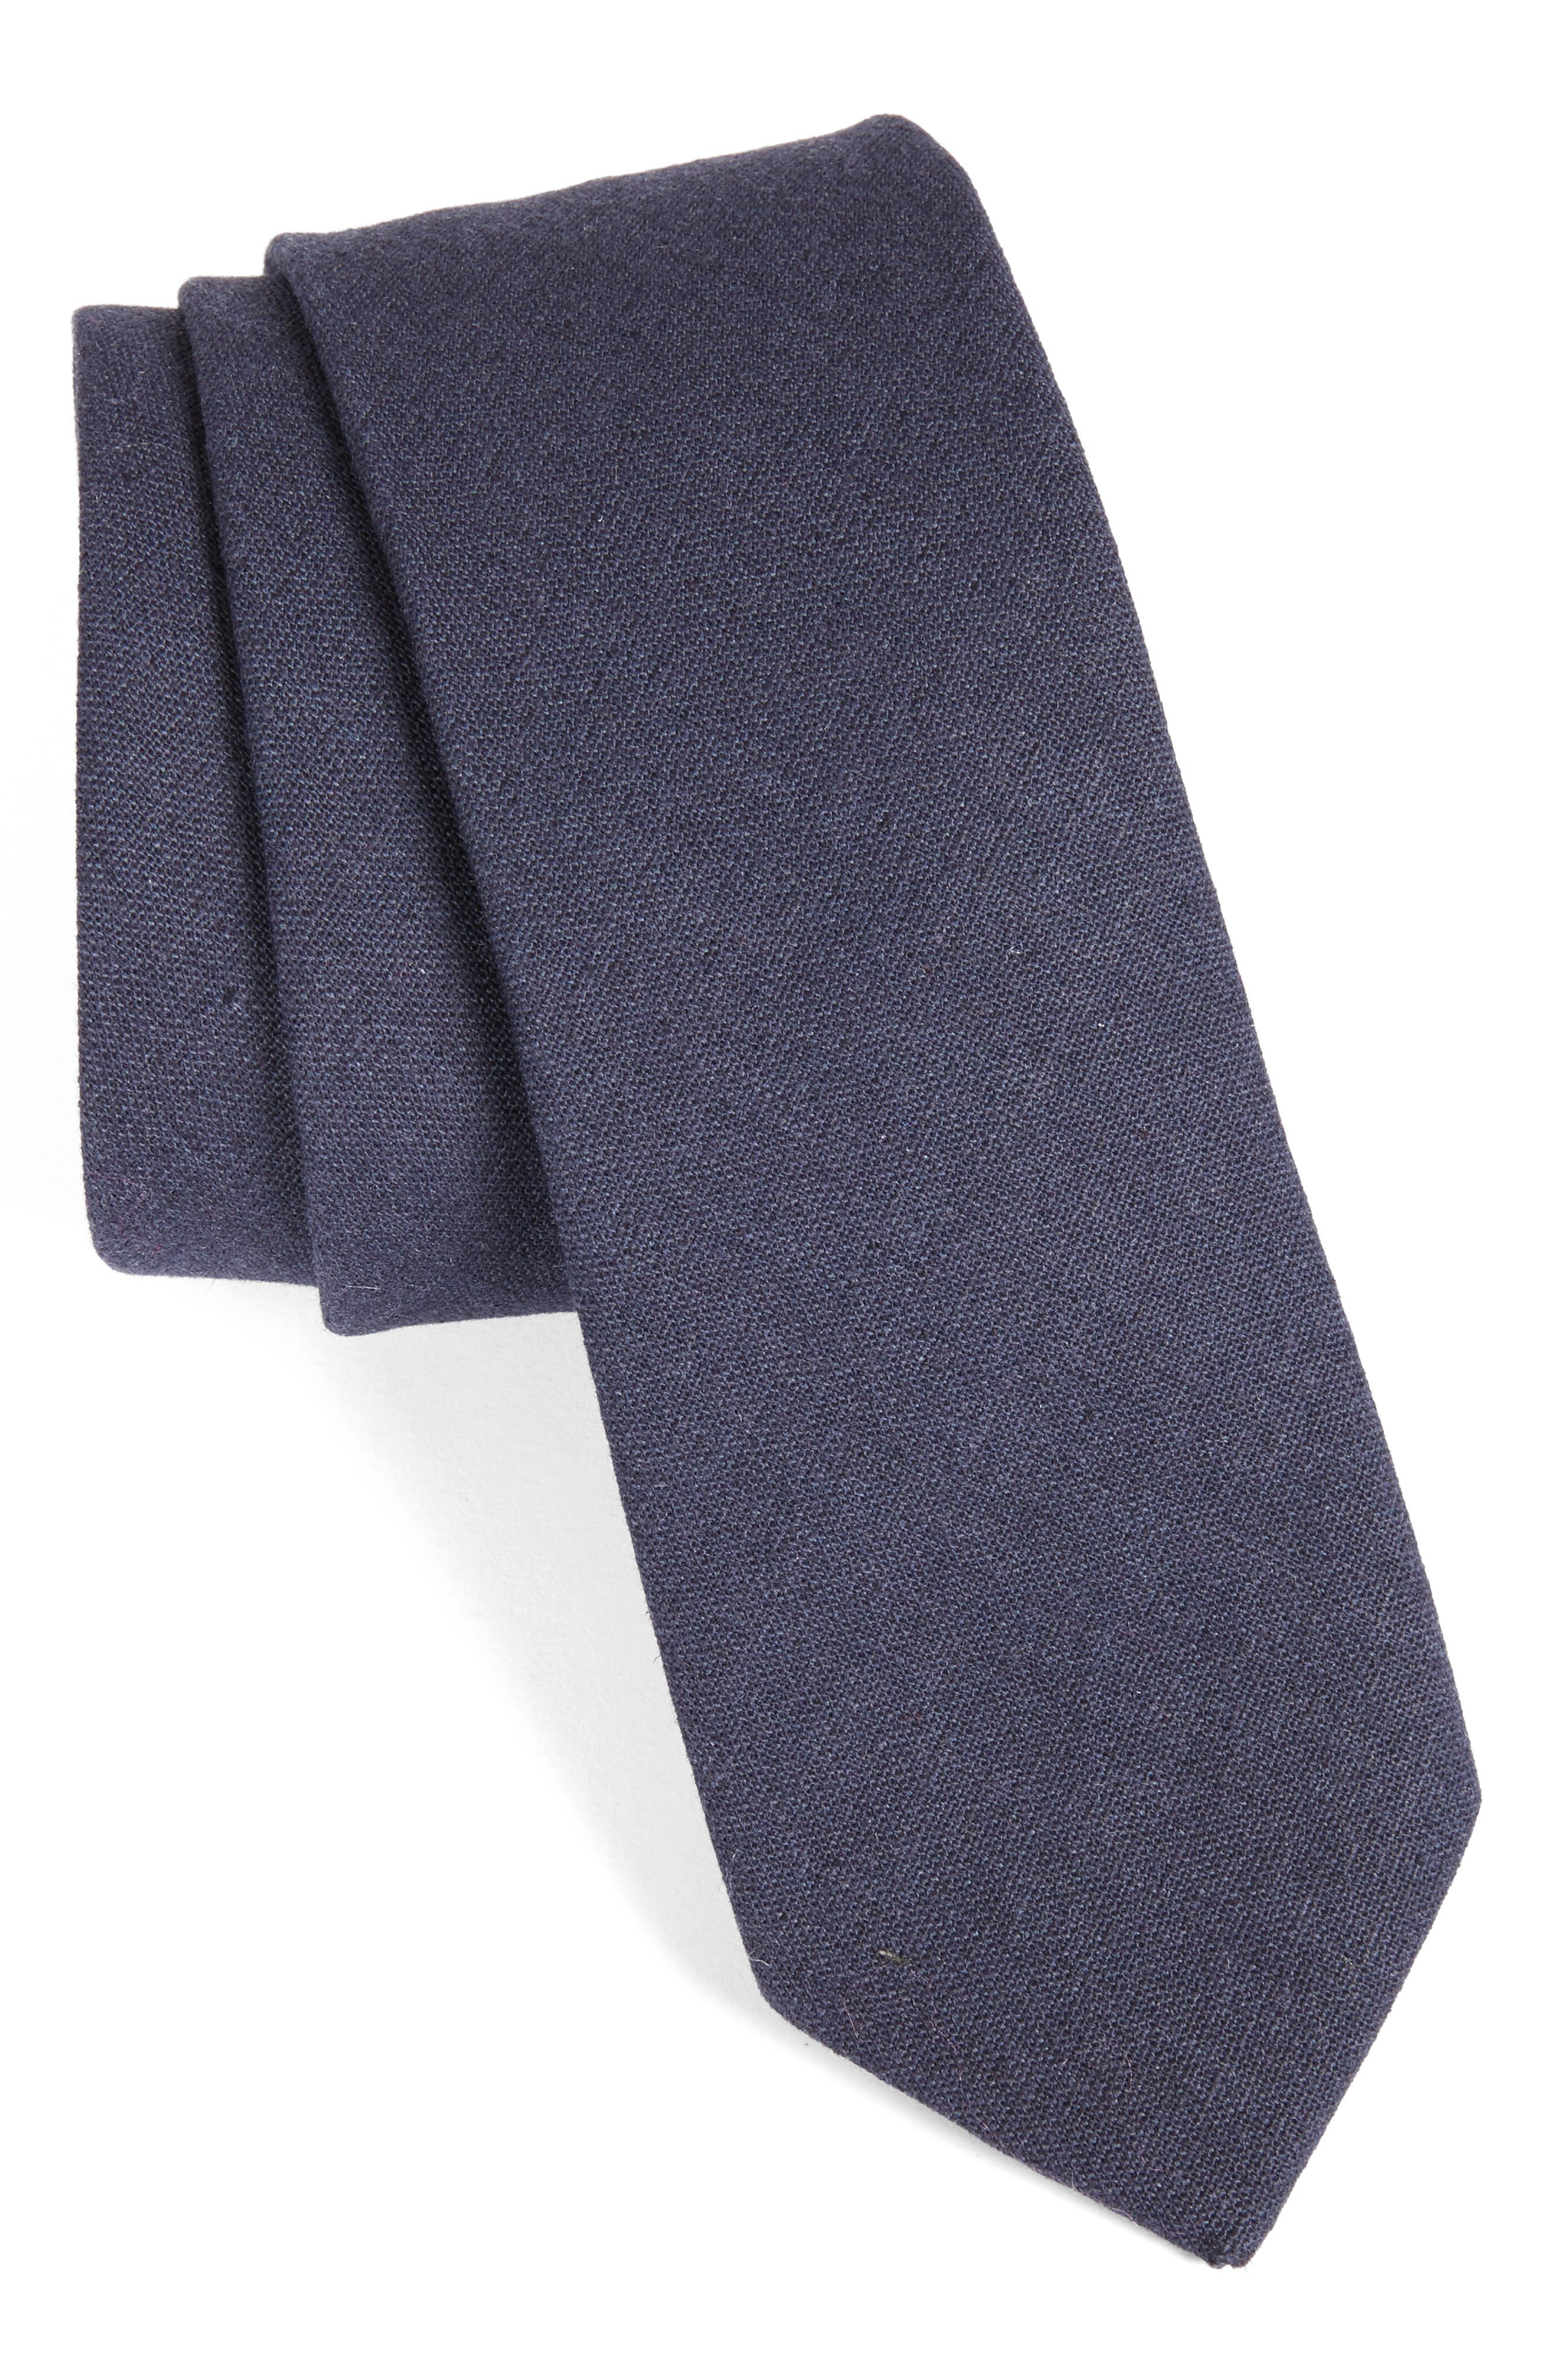 Solid Linen & Cotton Tie,                             Main thumbnail 1, color,                             NAVY